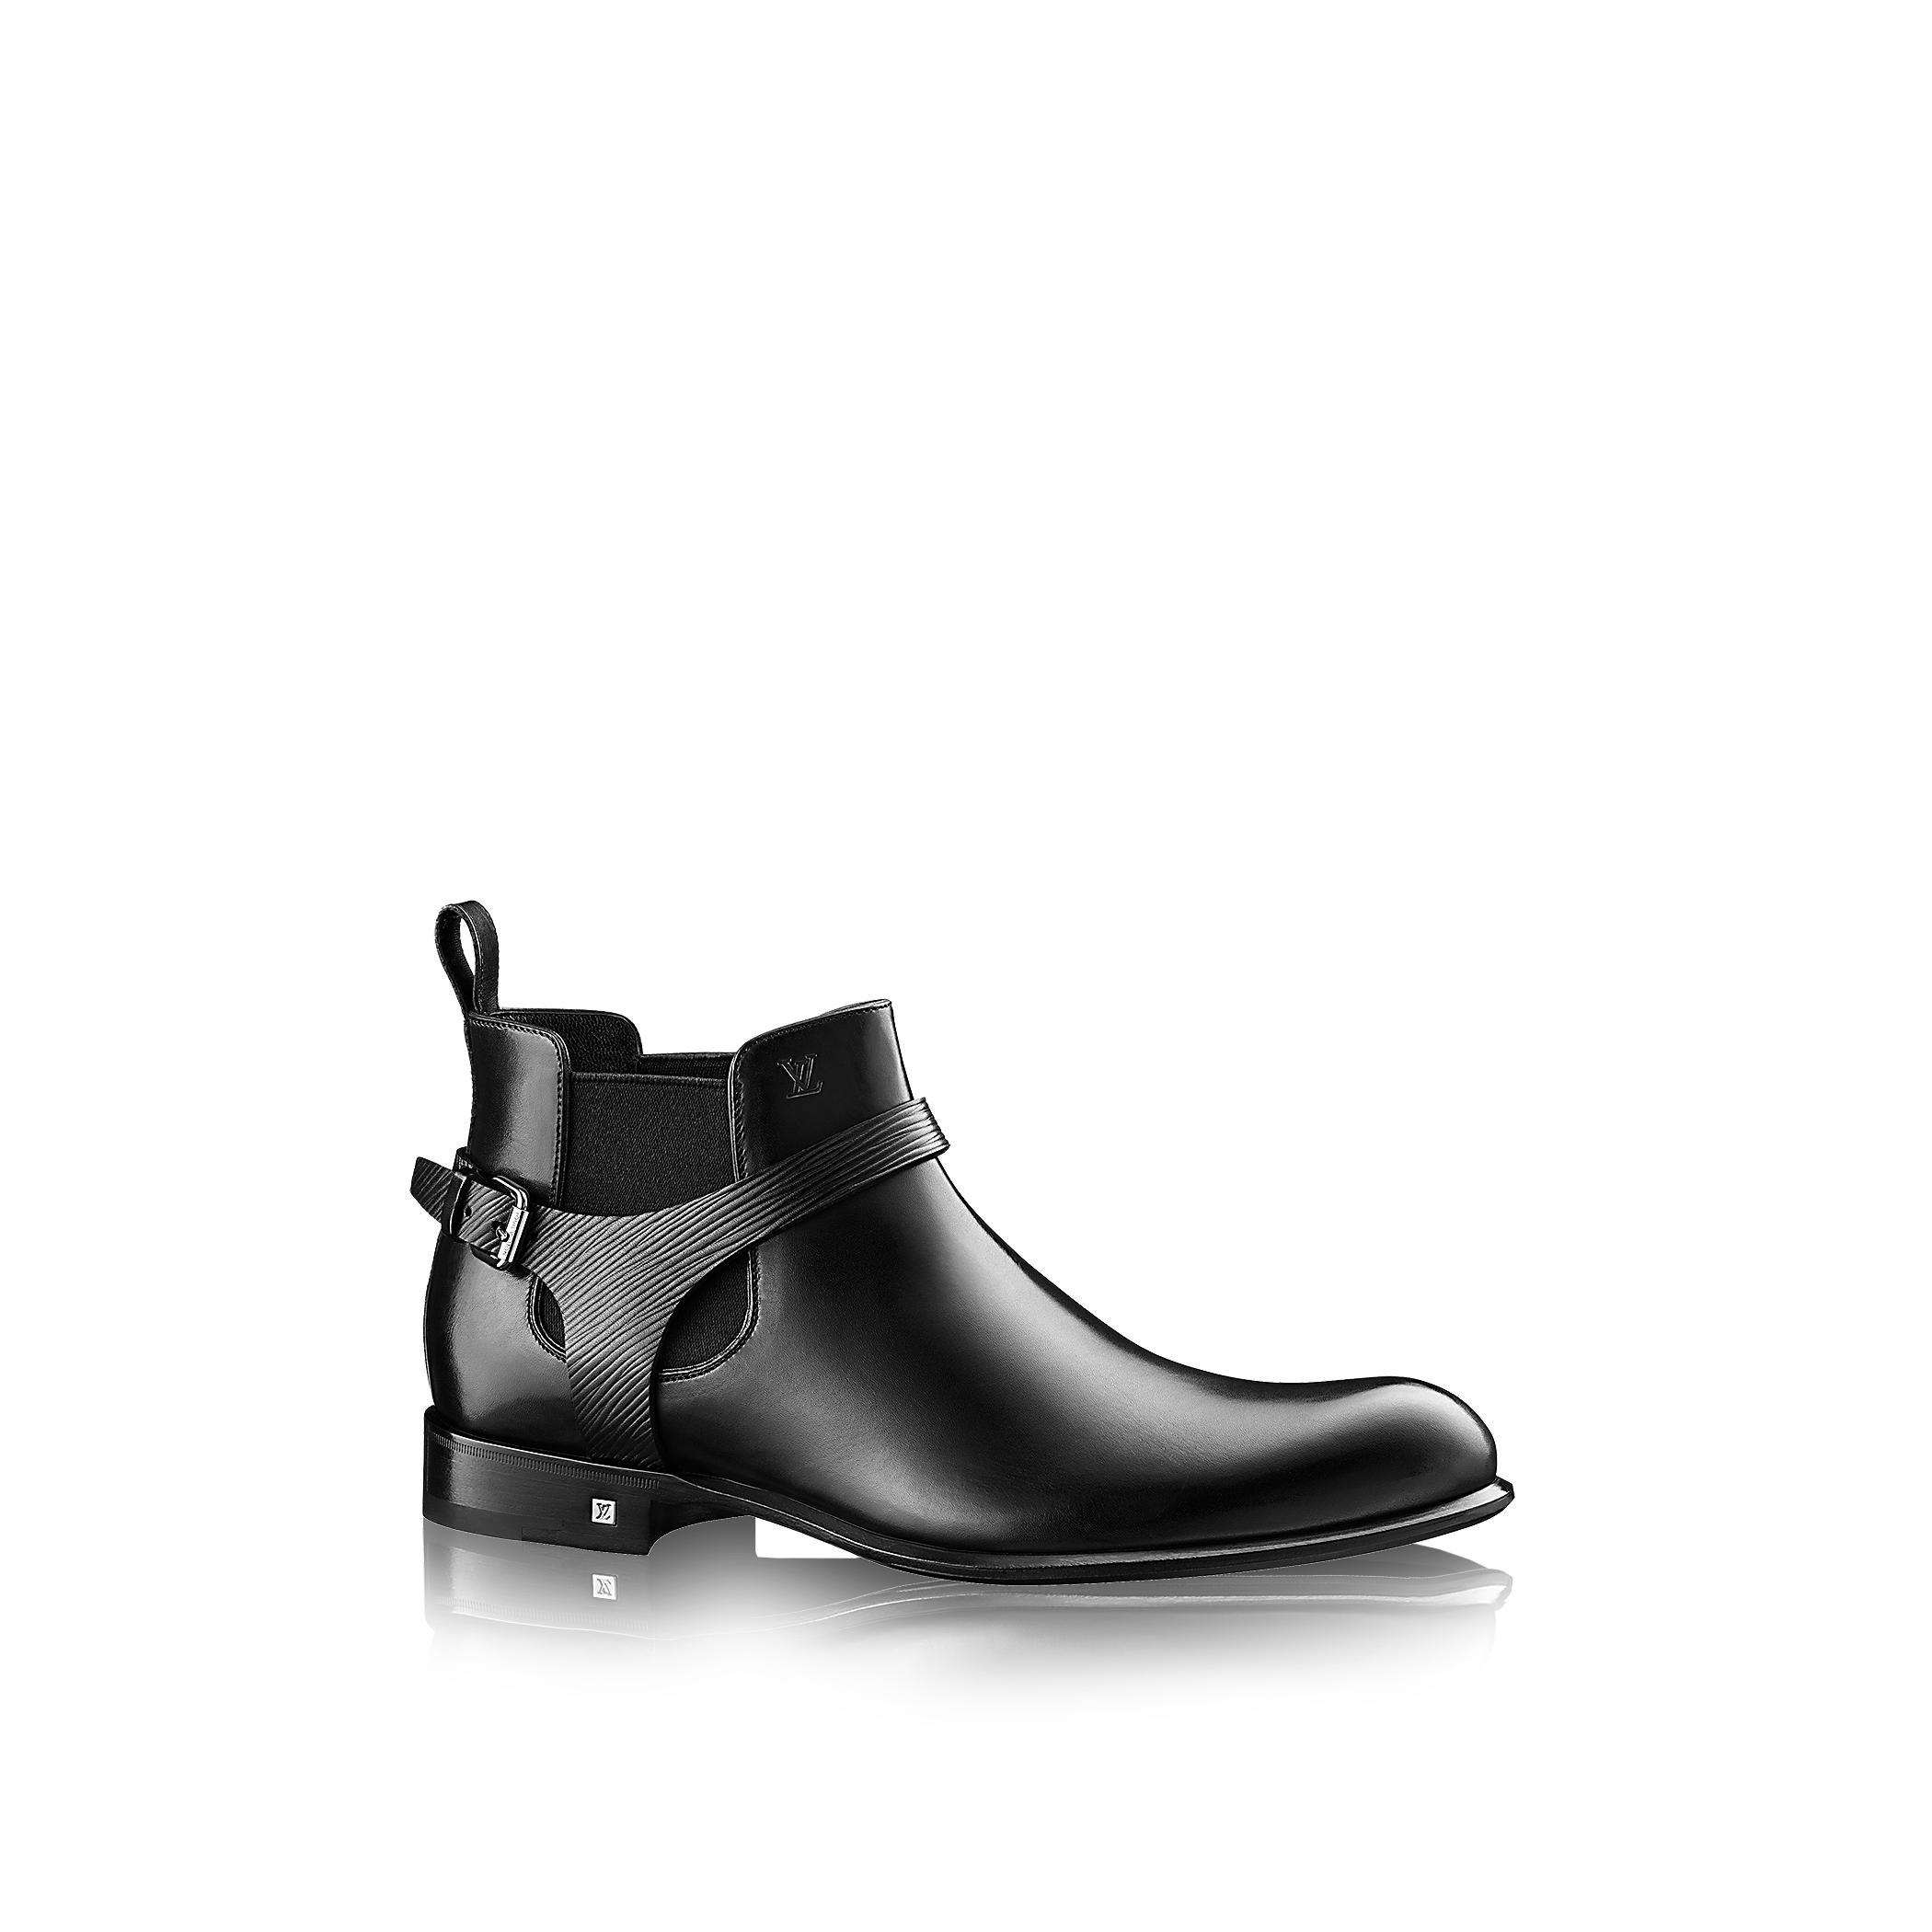 Louis Vuitton Greenwich Ankle Boot In Black For Men Lyst